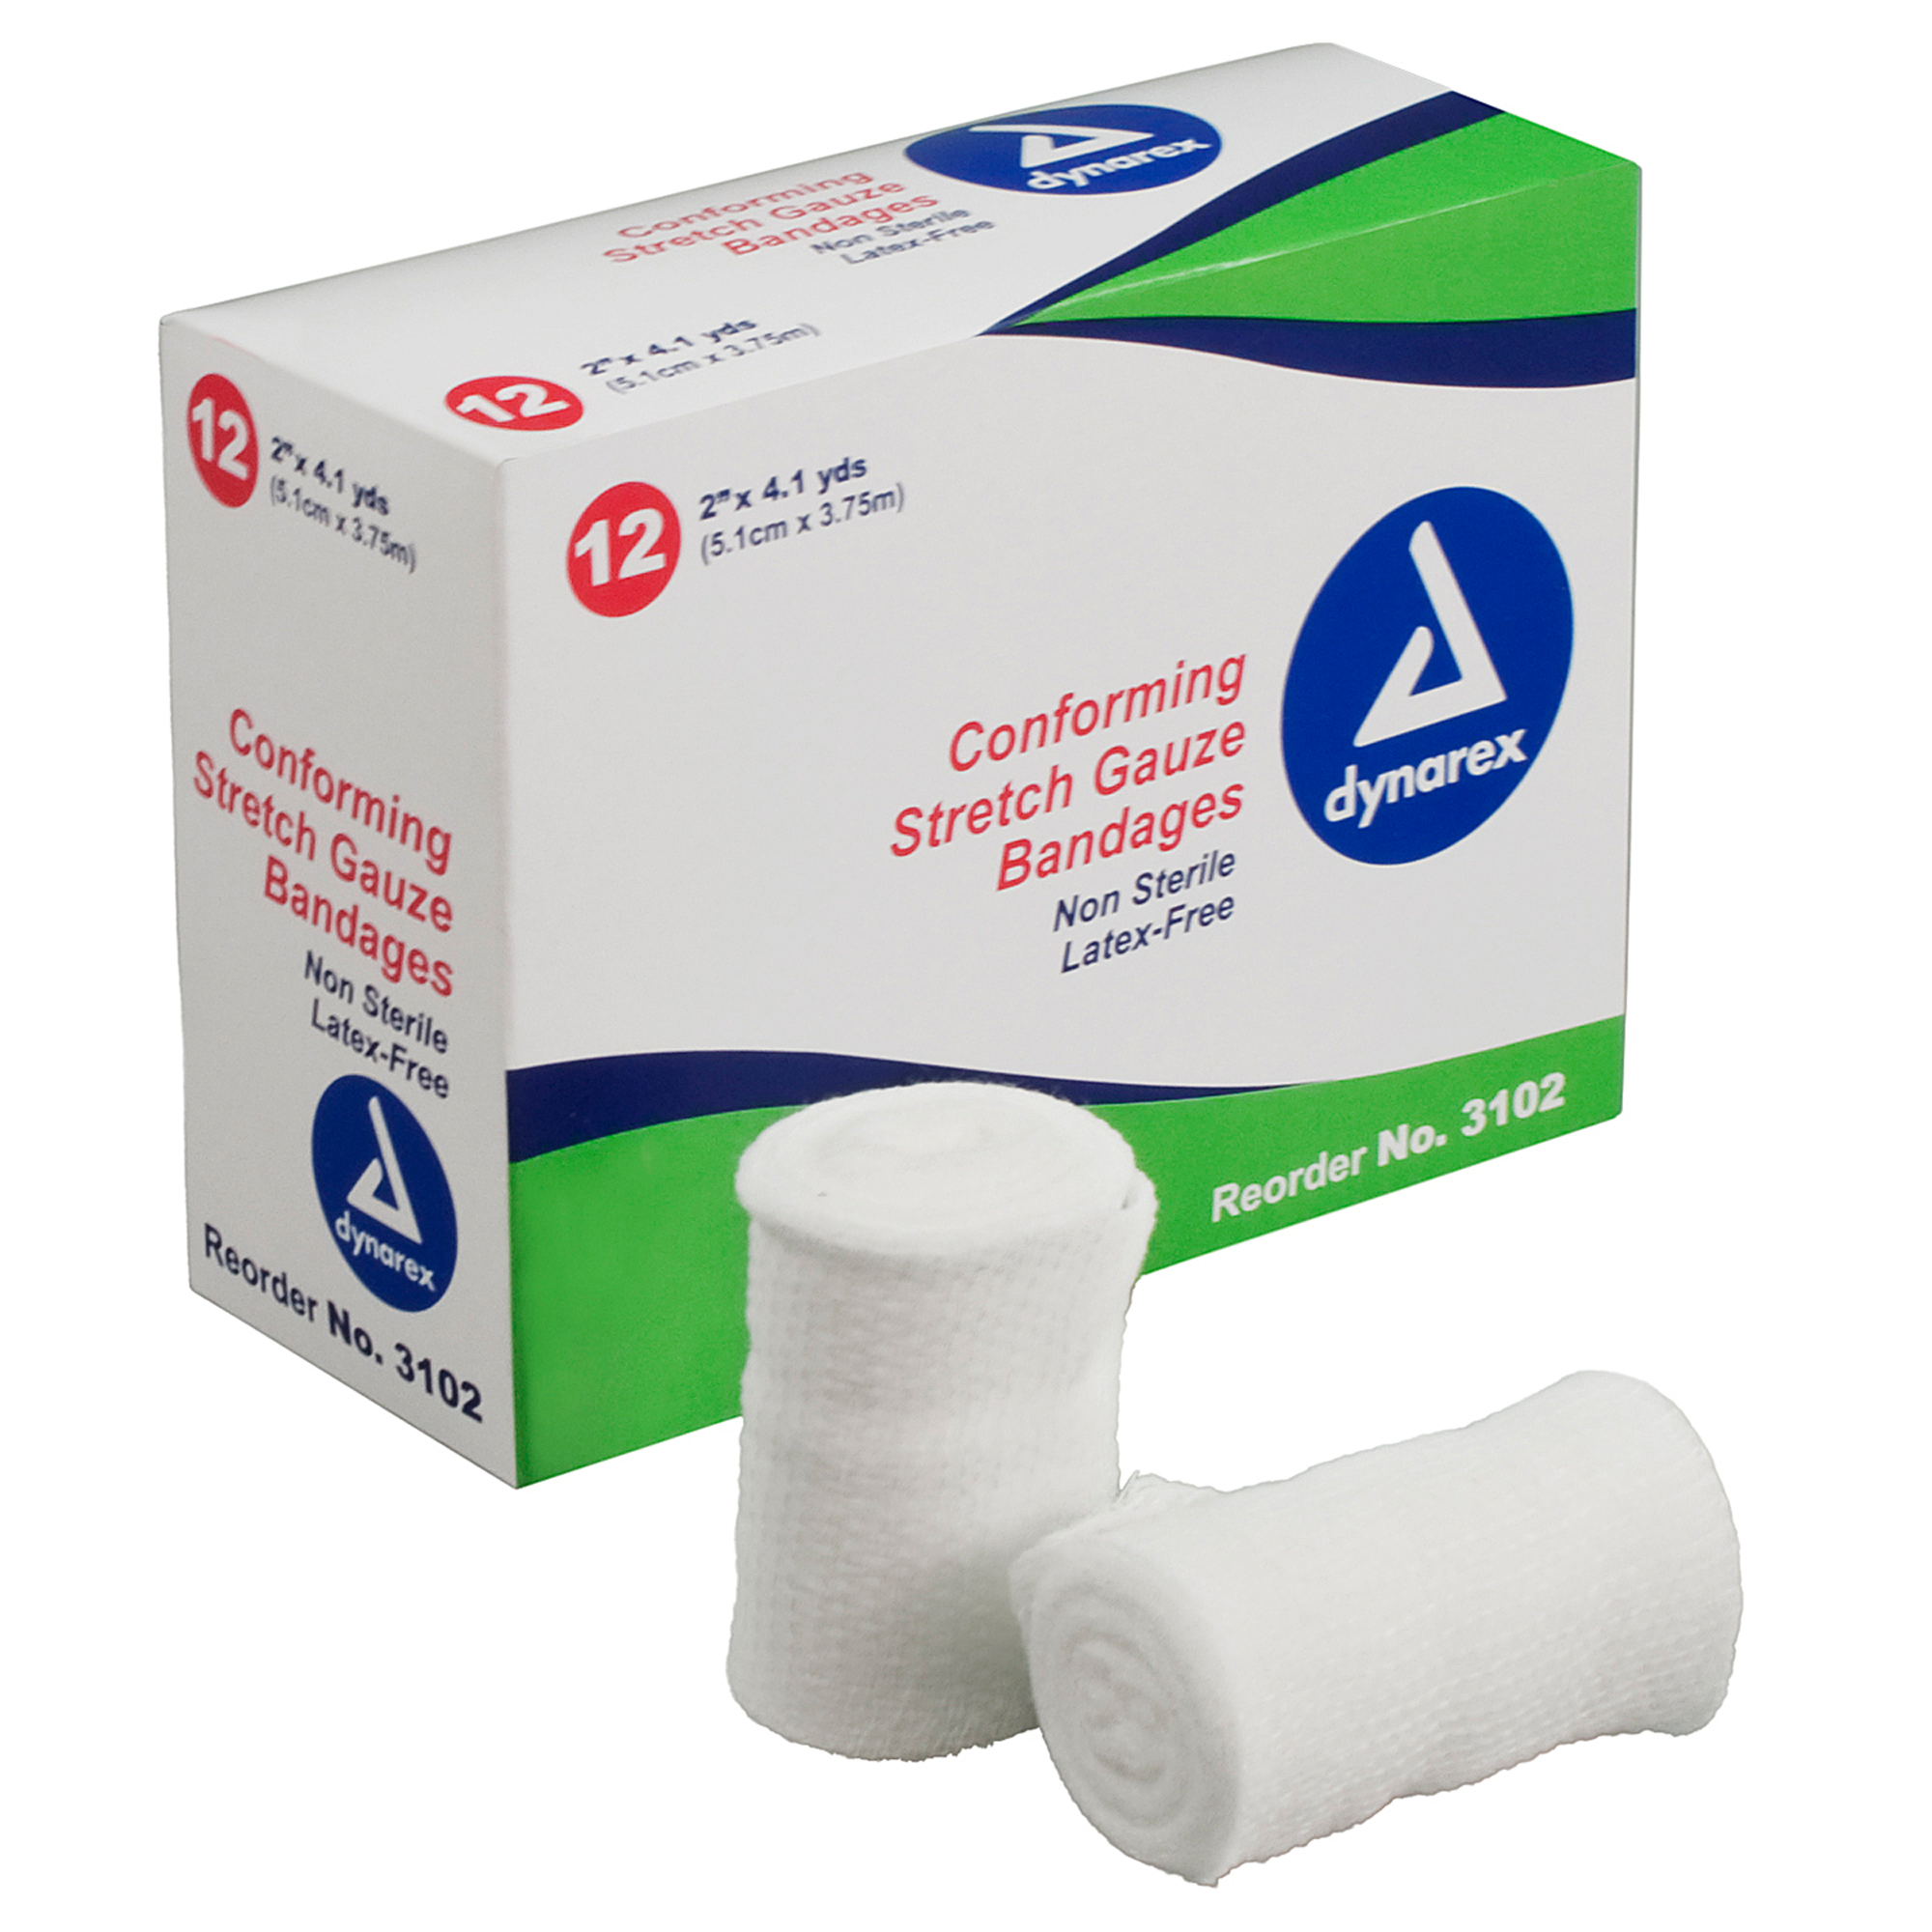 Non-Sterile Stretch Gauze - 5 yd/roll